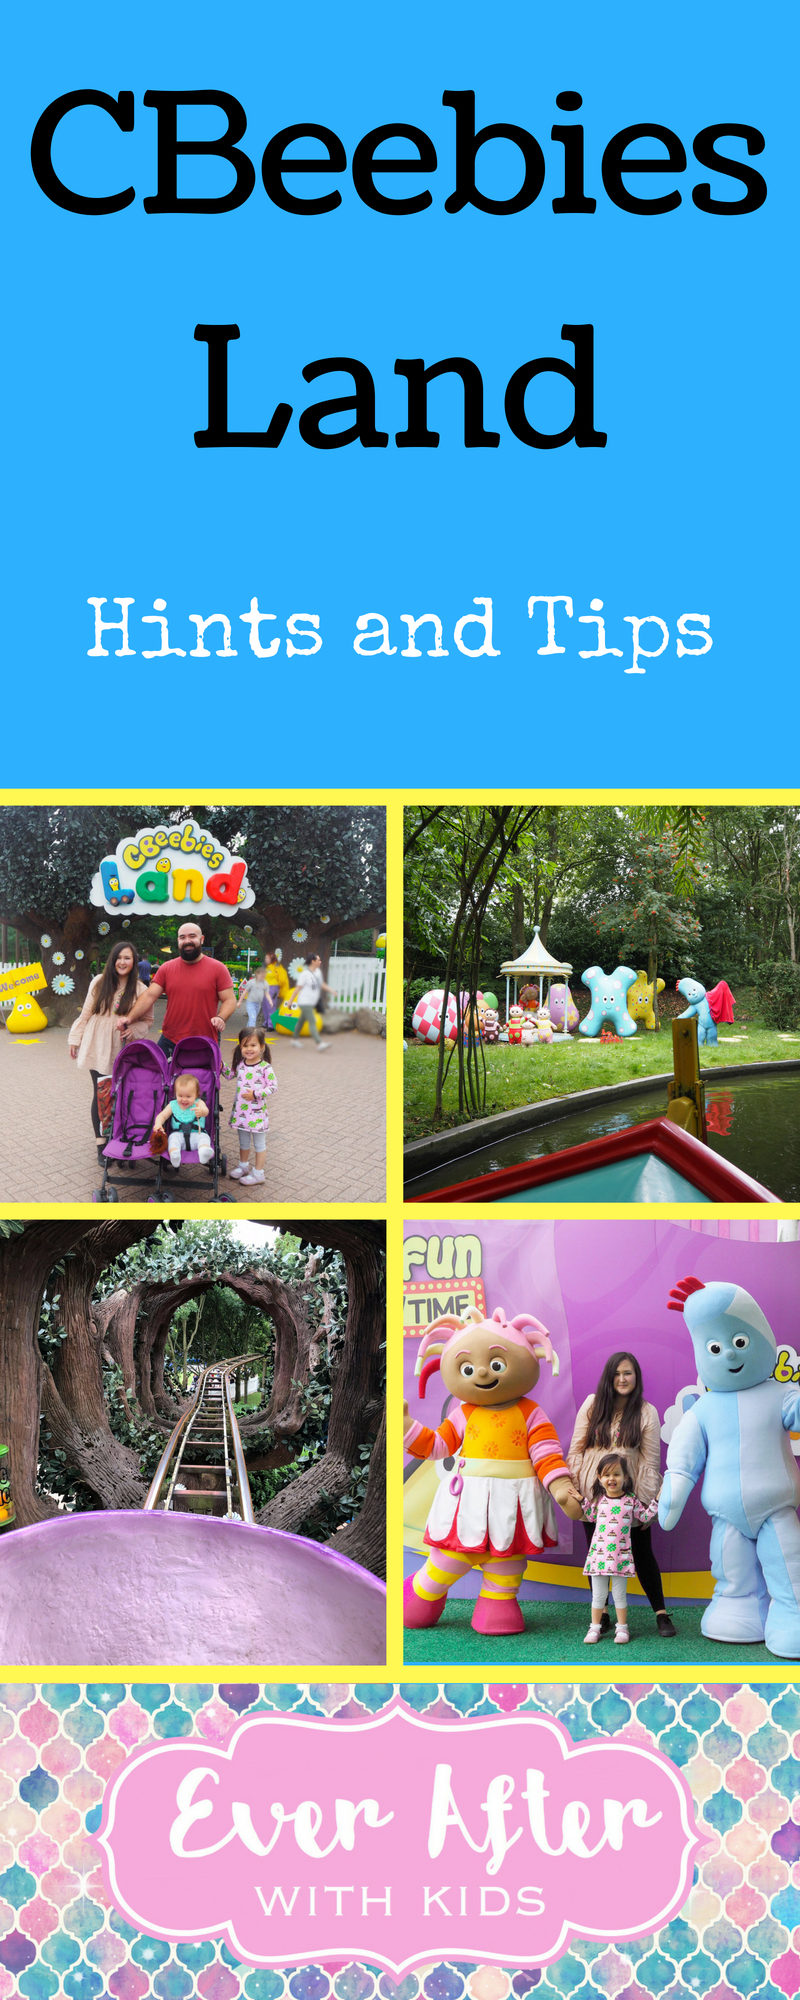 cbeebies land hints and tips pin